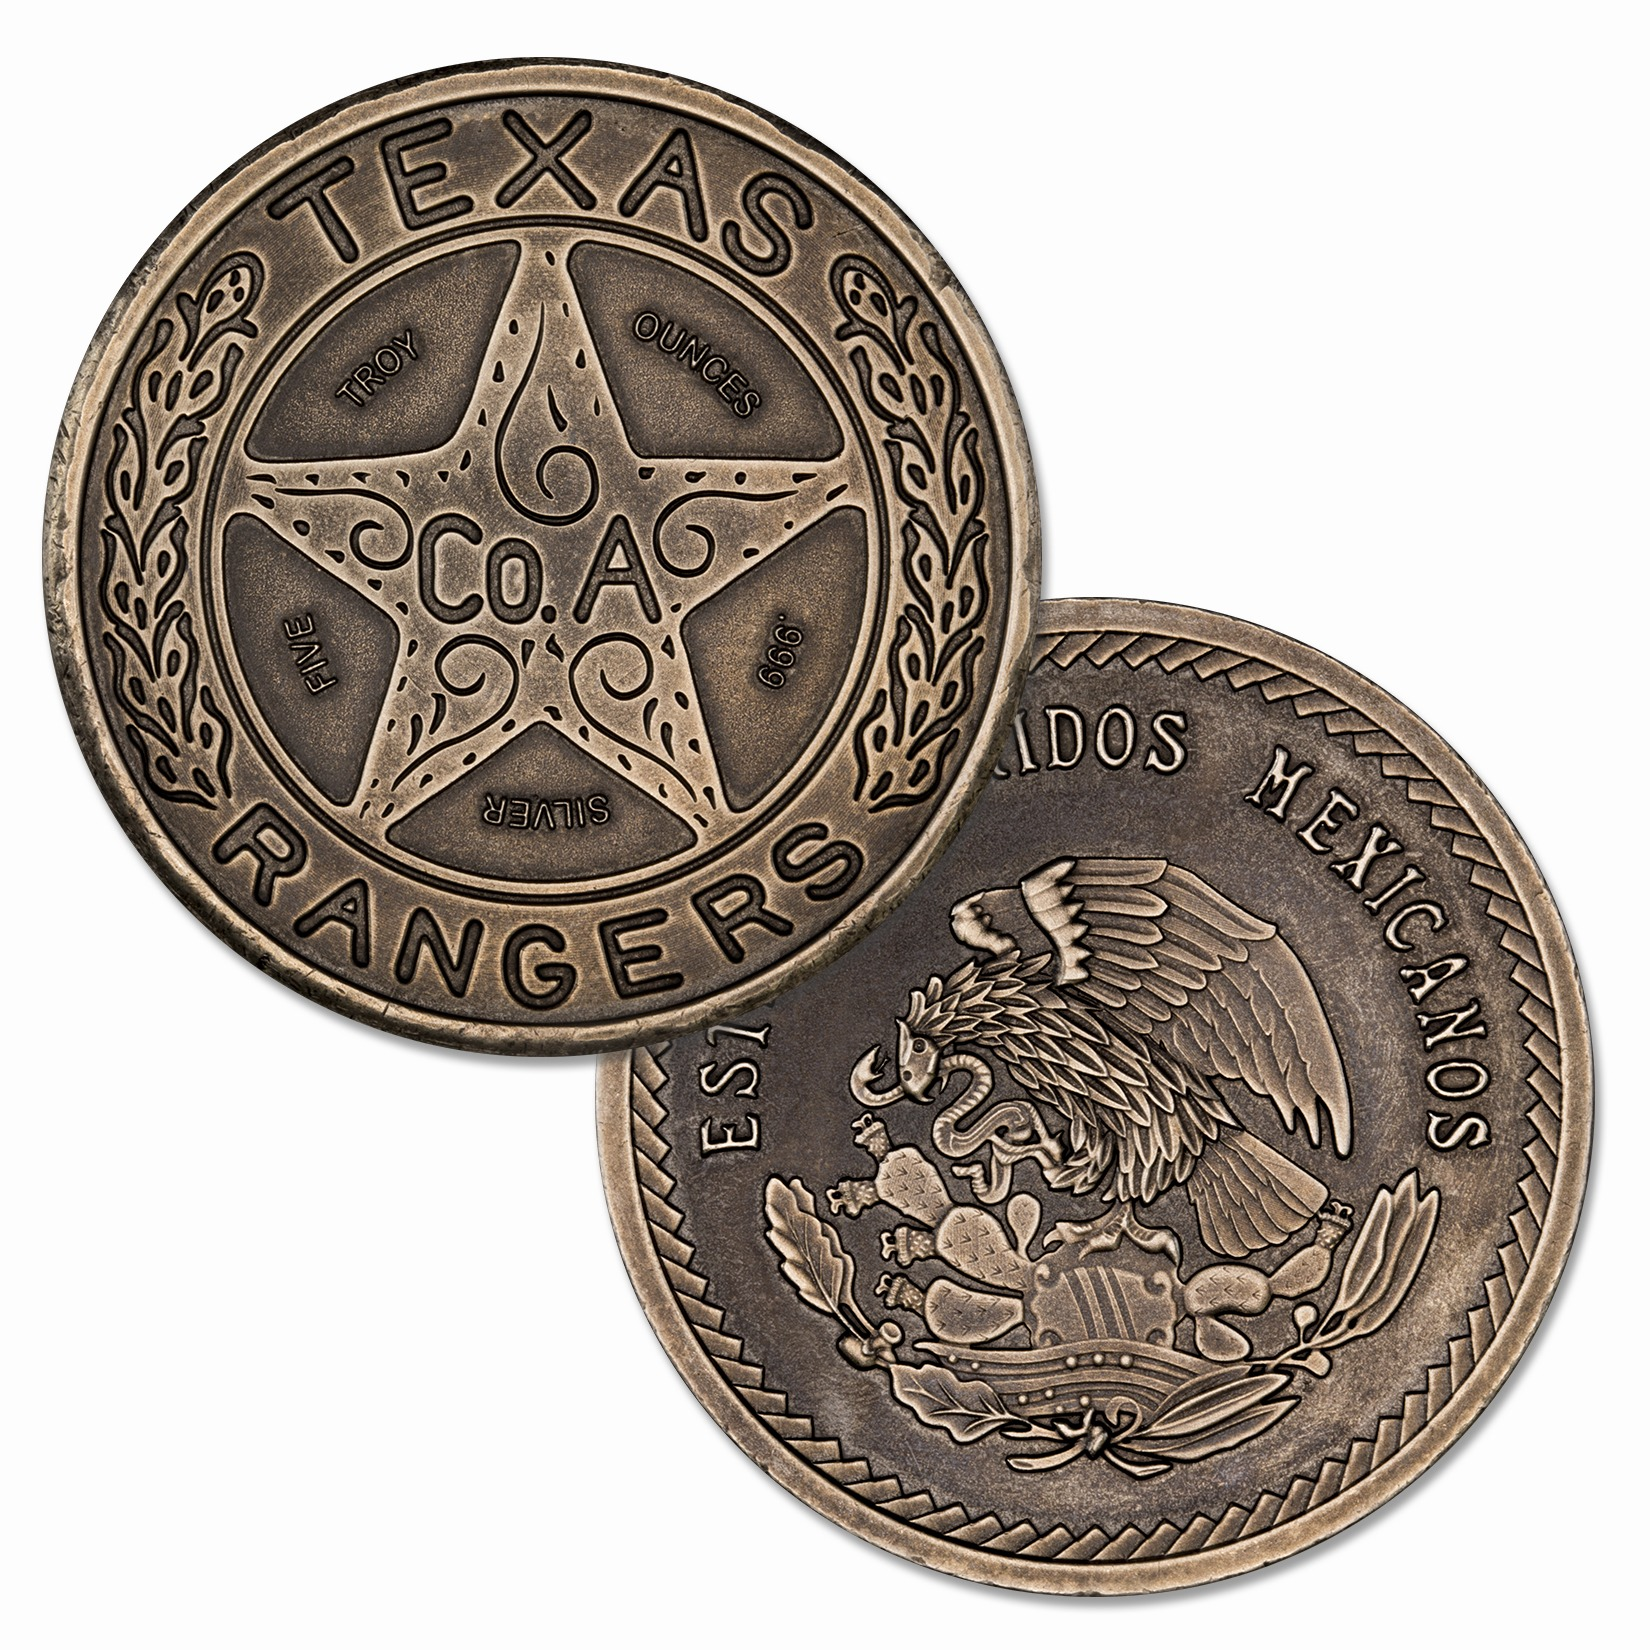 TEXAS RANGER BADGE TRIBUTE – 5 TROY OUNCE – 50MM (ANTIQUED)